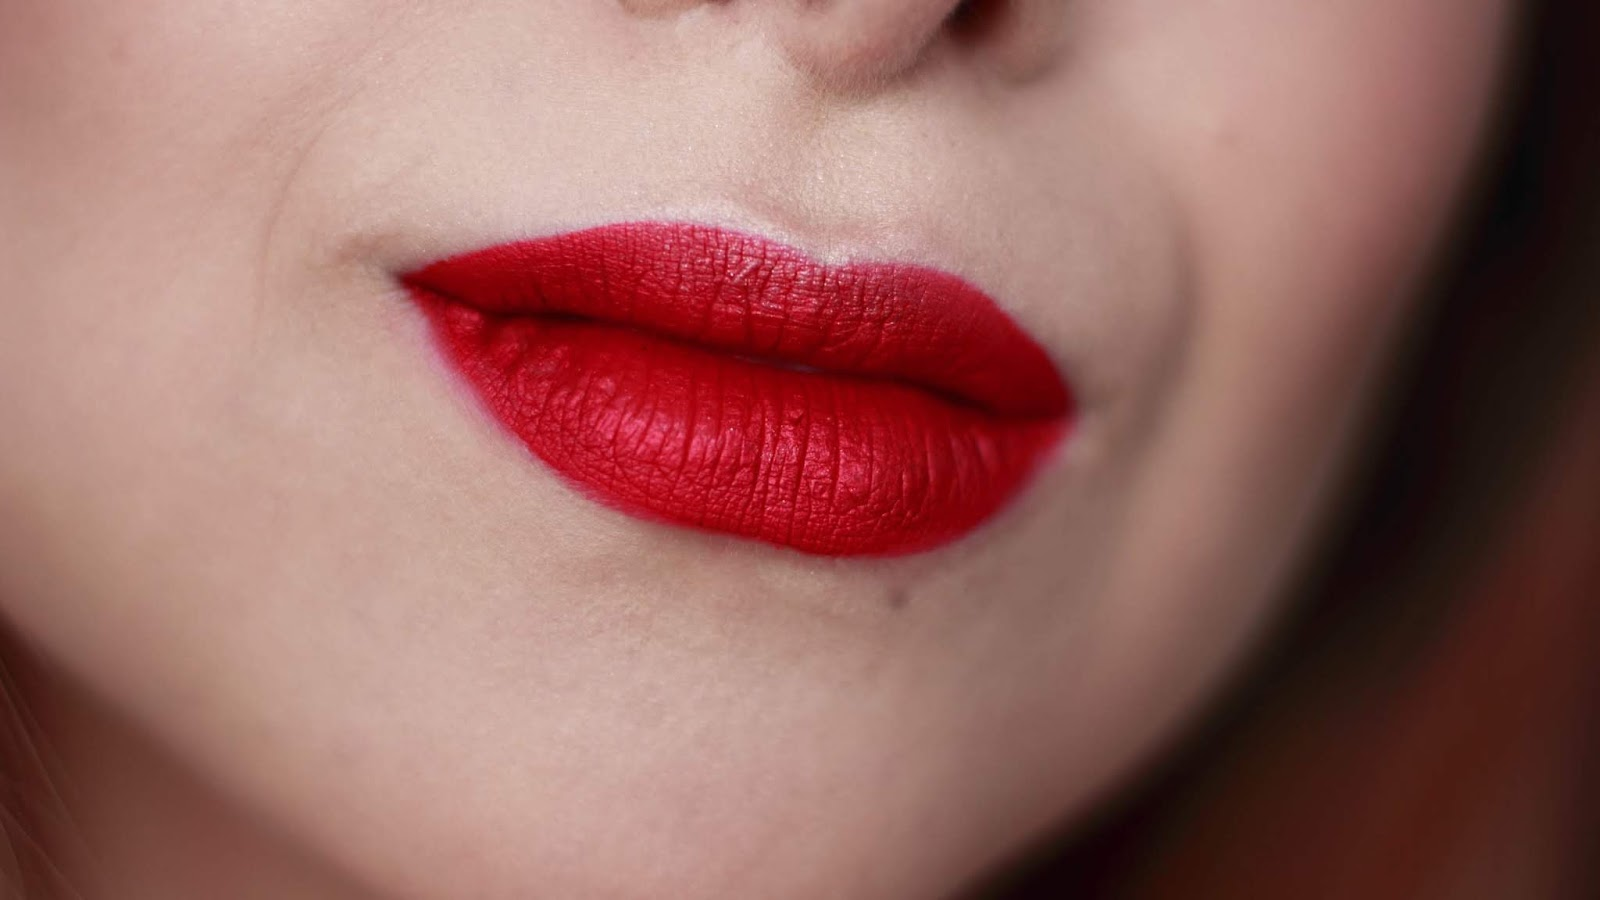 The best nude lipstick for your skin tone